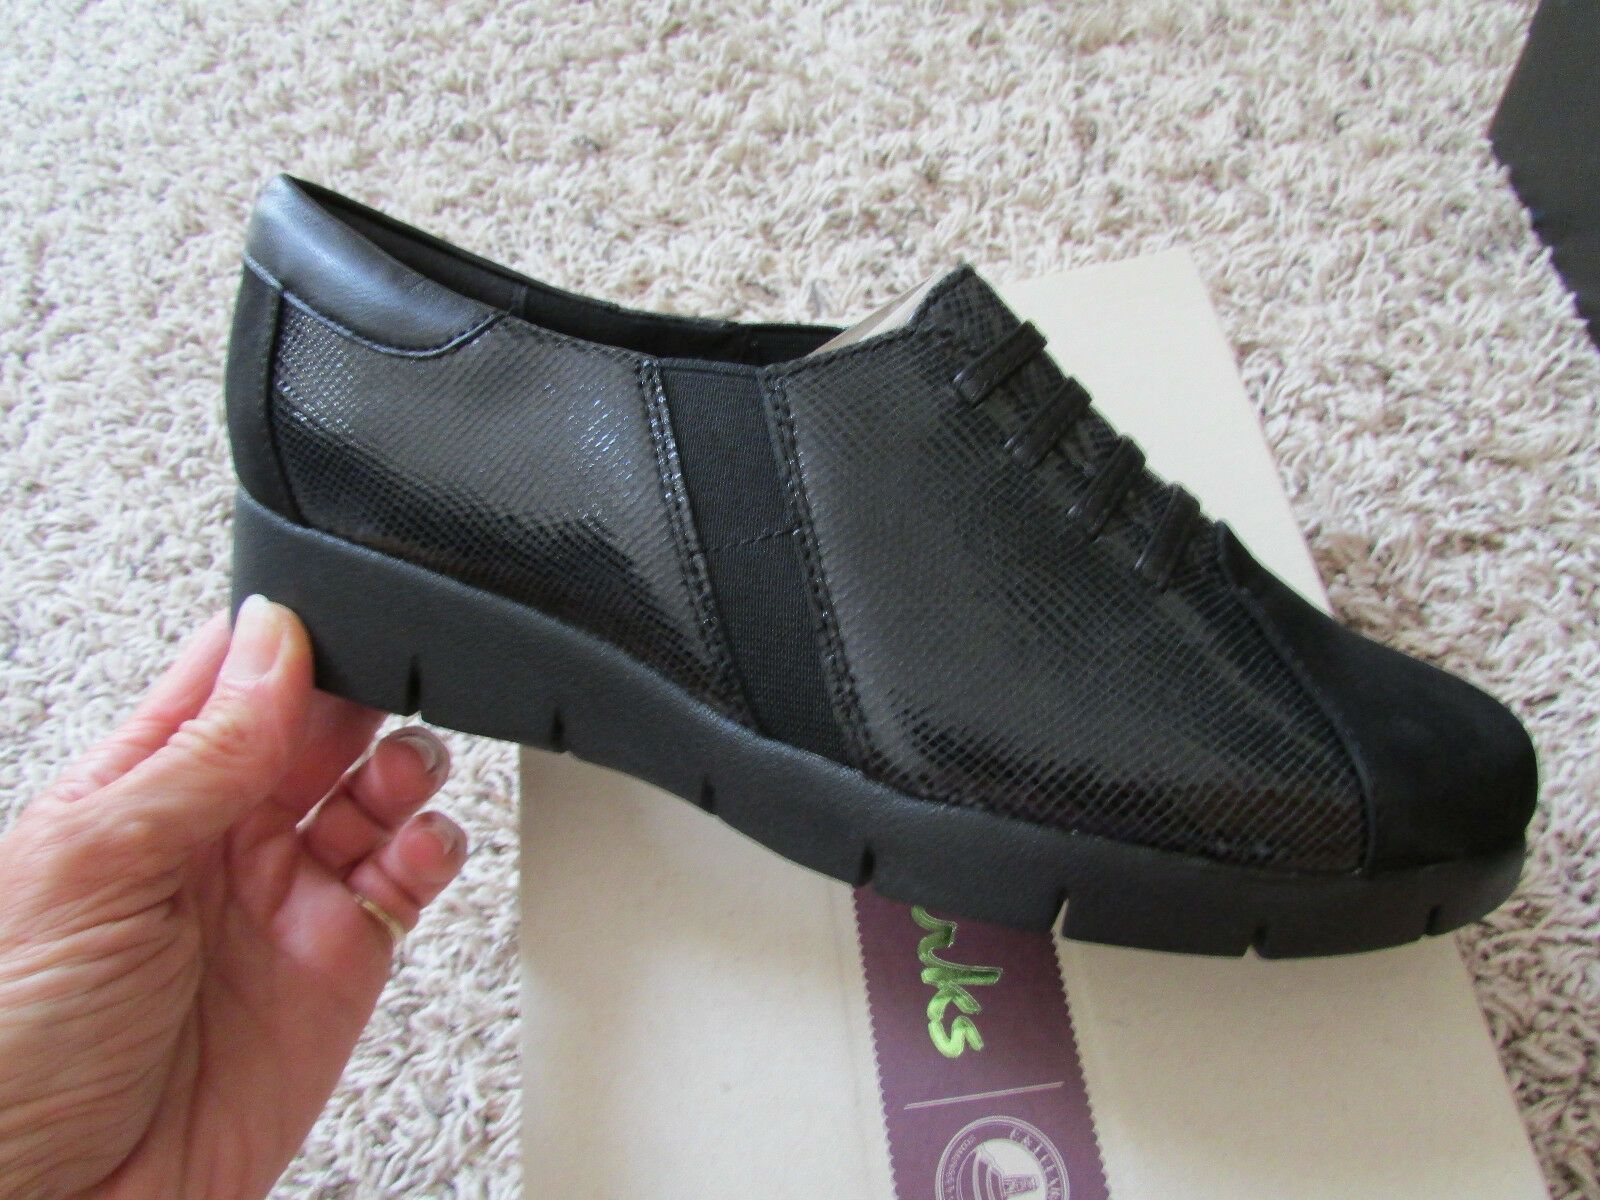 NEW CLARKS DAELYN VISTA BLACK LEATHER Schuhe Damenschuhe 7 COMFORT Schuhe FREE SHIP